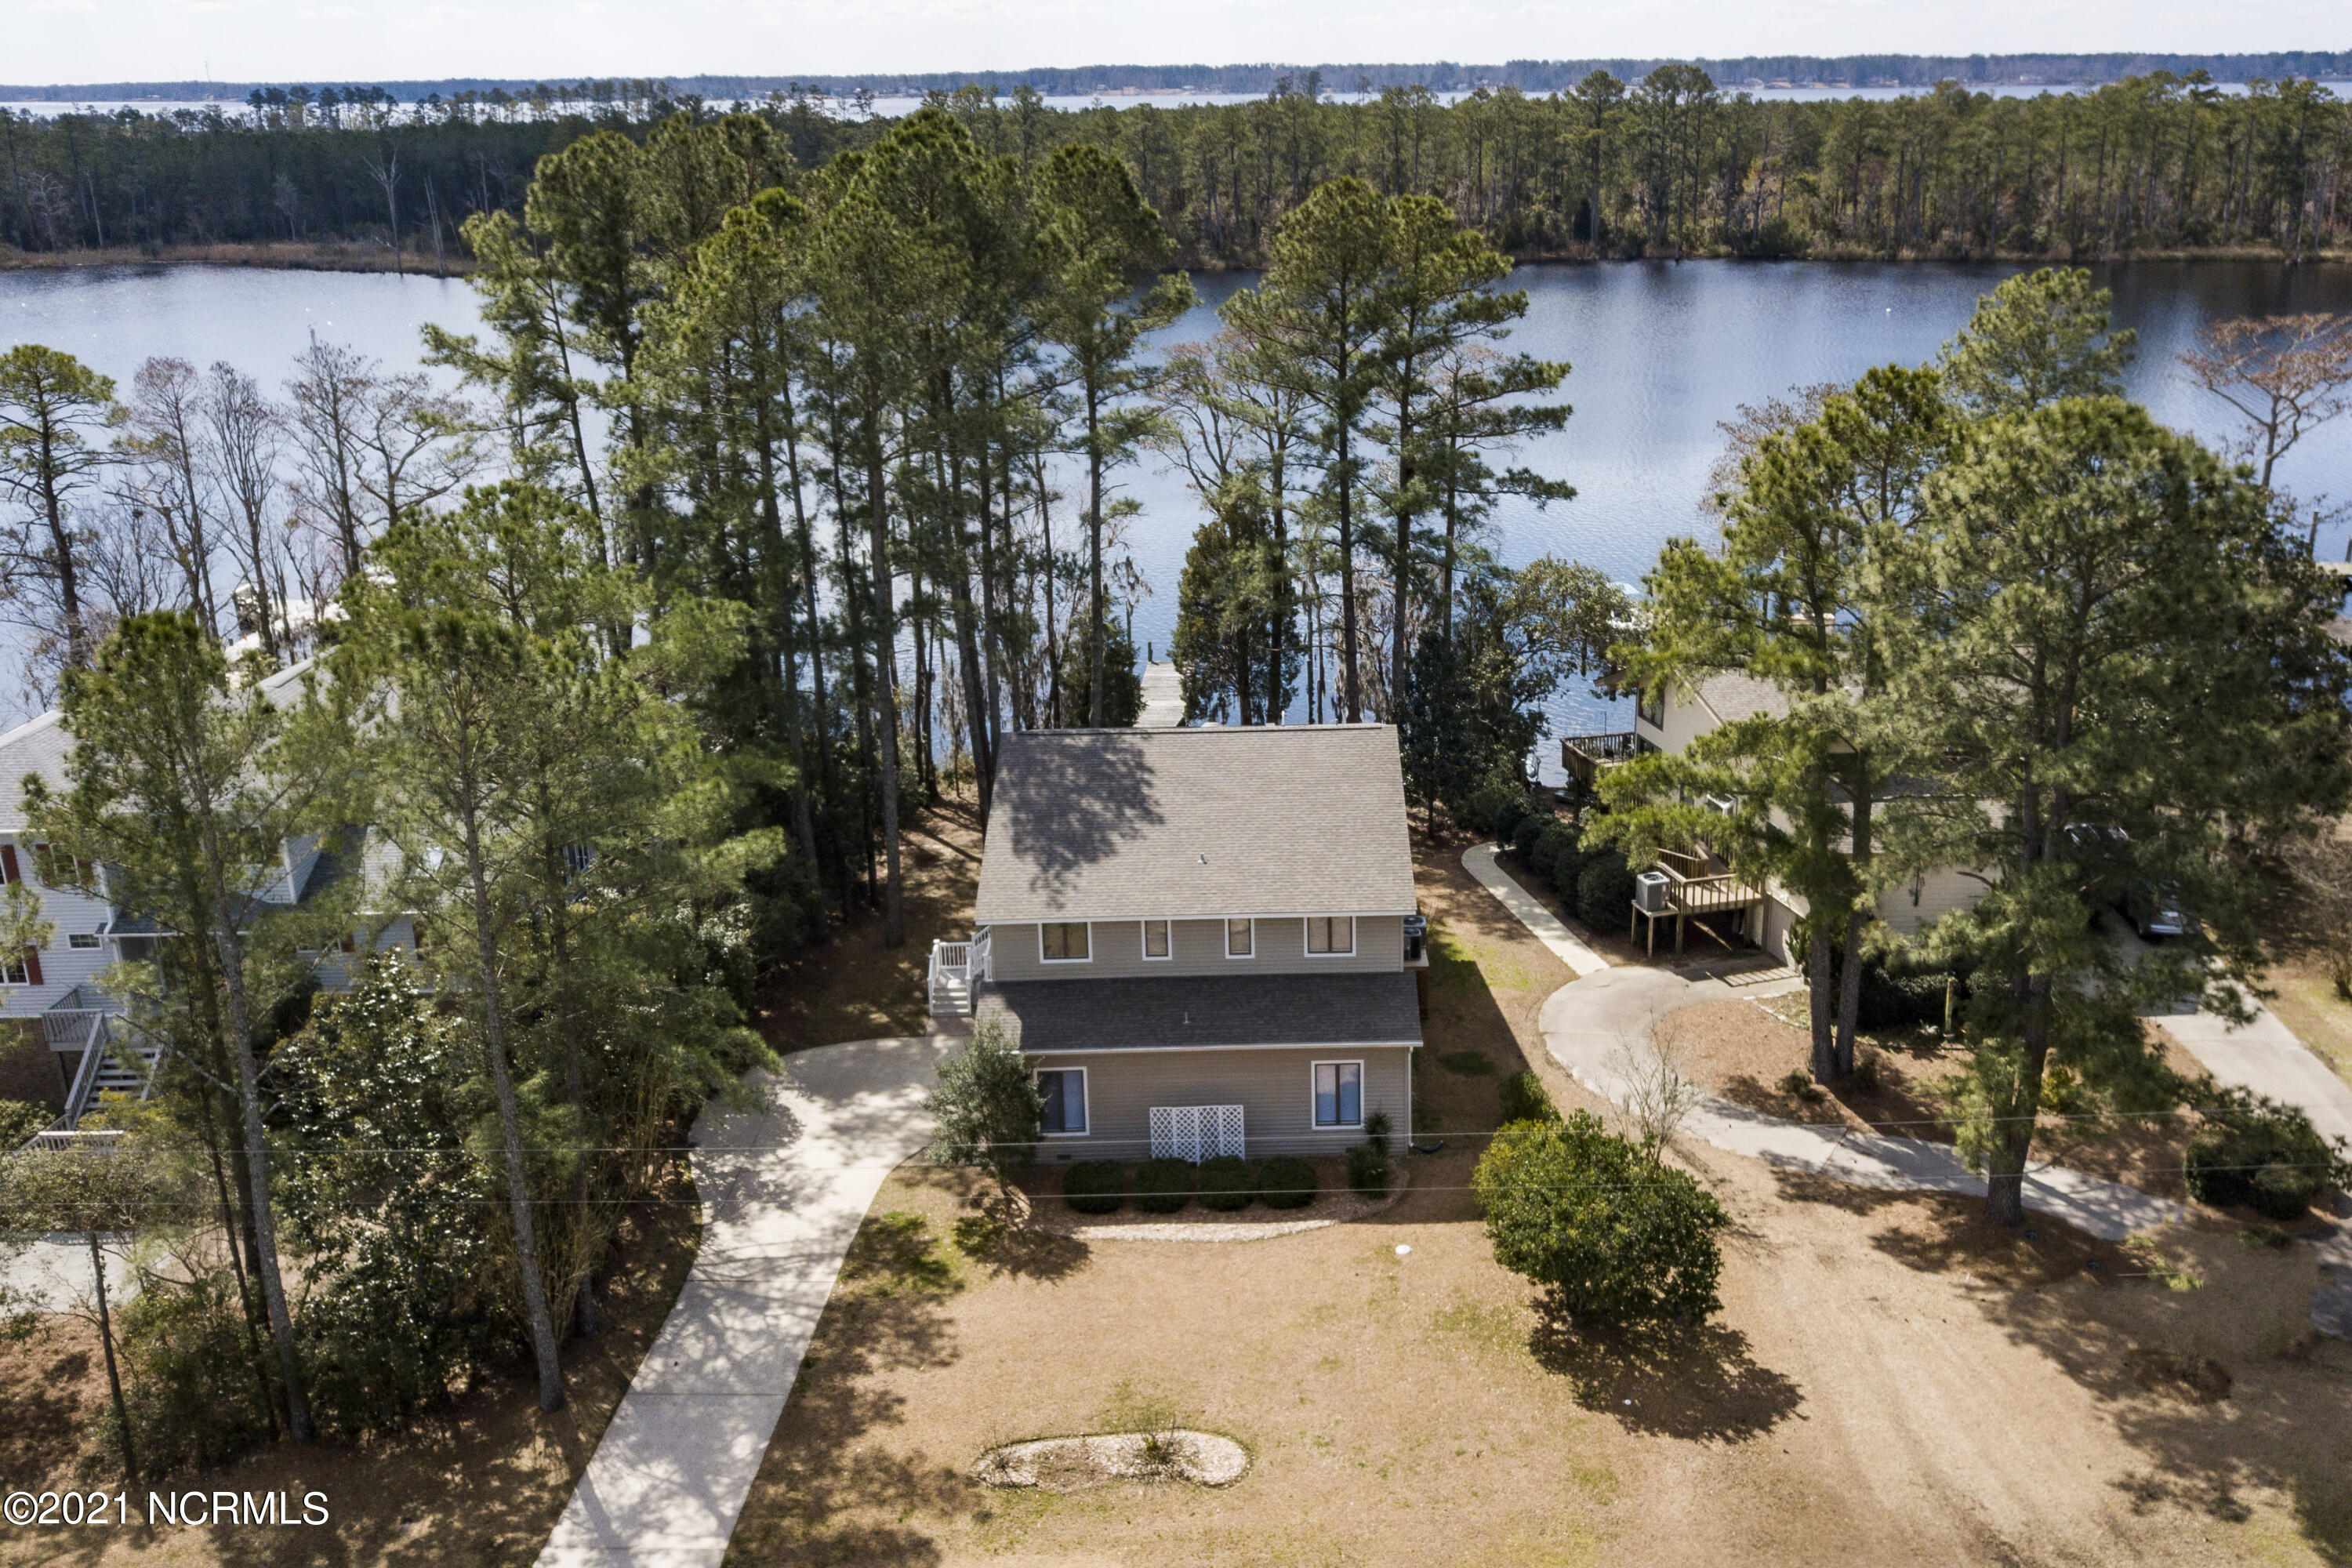 5410 Trade Winds Road, New Bern, North Carolina 28560, 3 Bedrooms Bedrooms, 7 Rooms Rooms,4 BathroomsBathrooms,Single family residence,For sale,Trade Winds,100260360